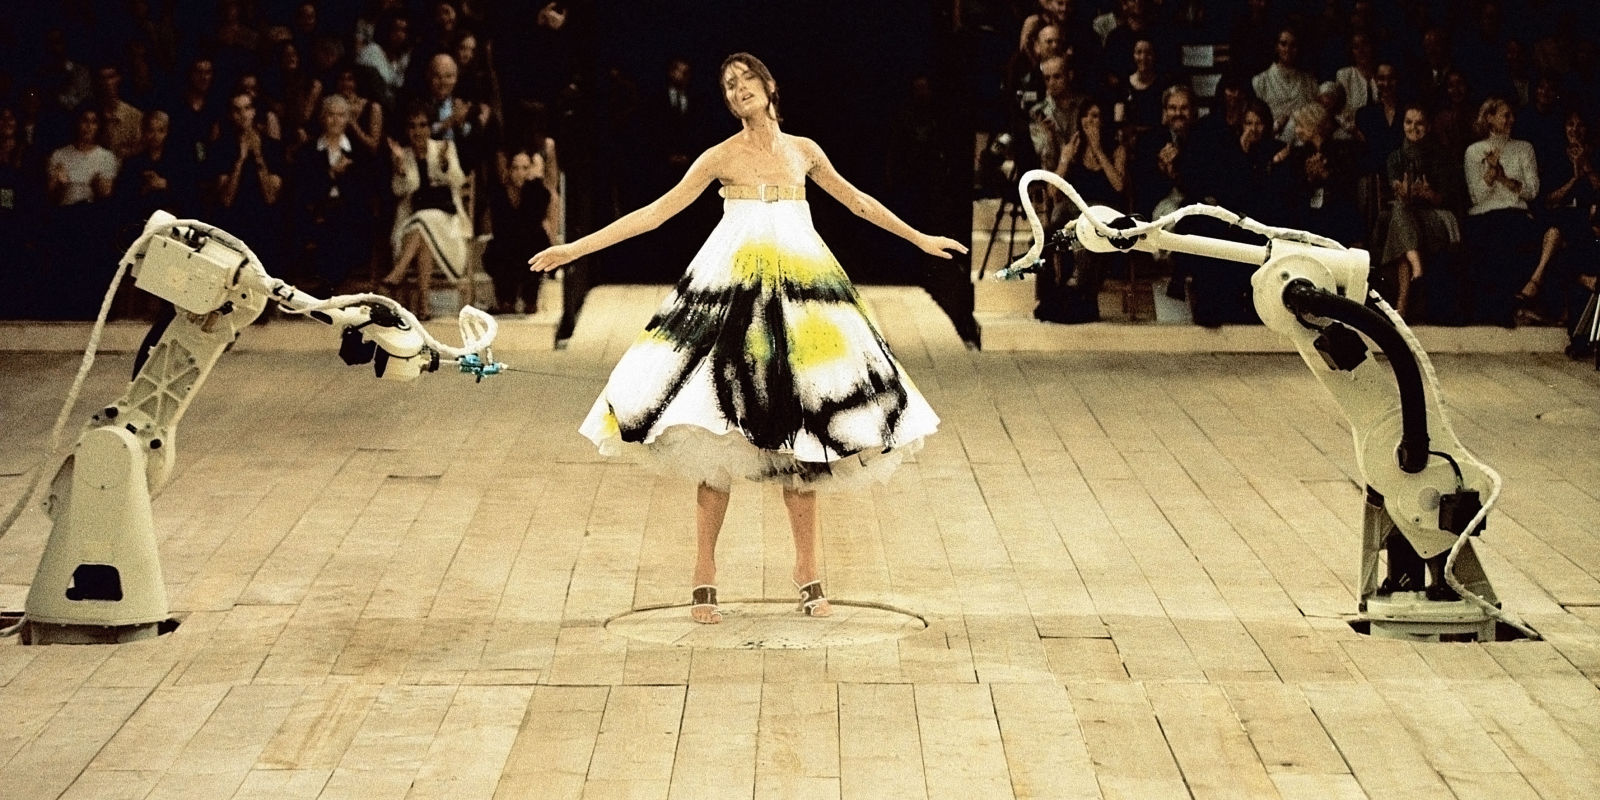 Alexander mcqueen s best runway shows of all time - Best runway shows ...